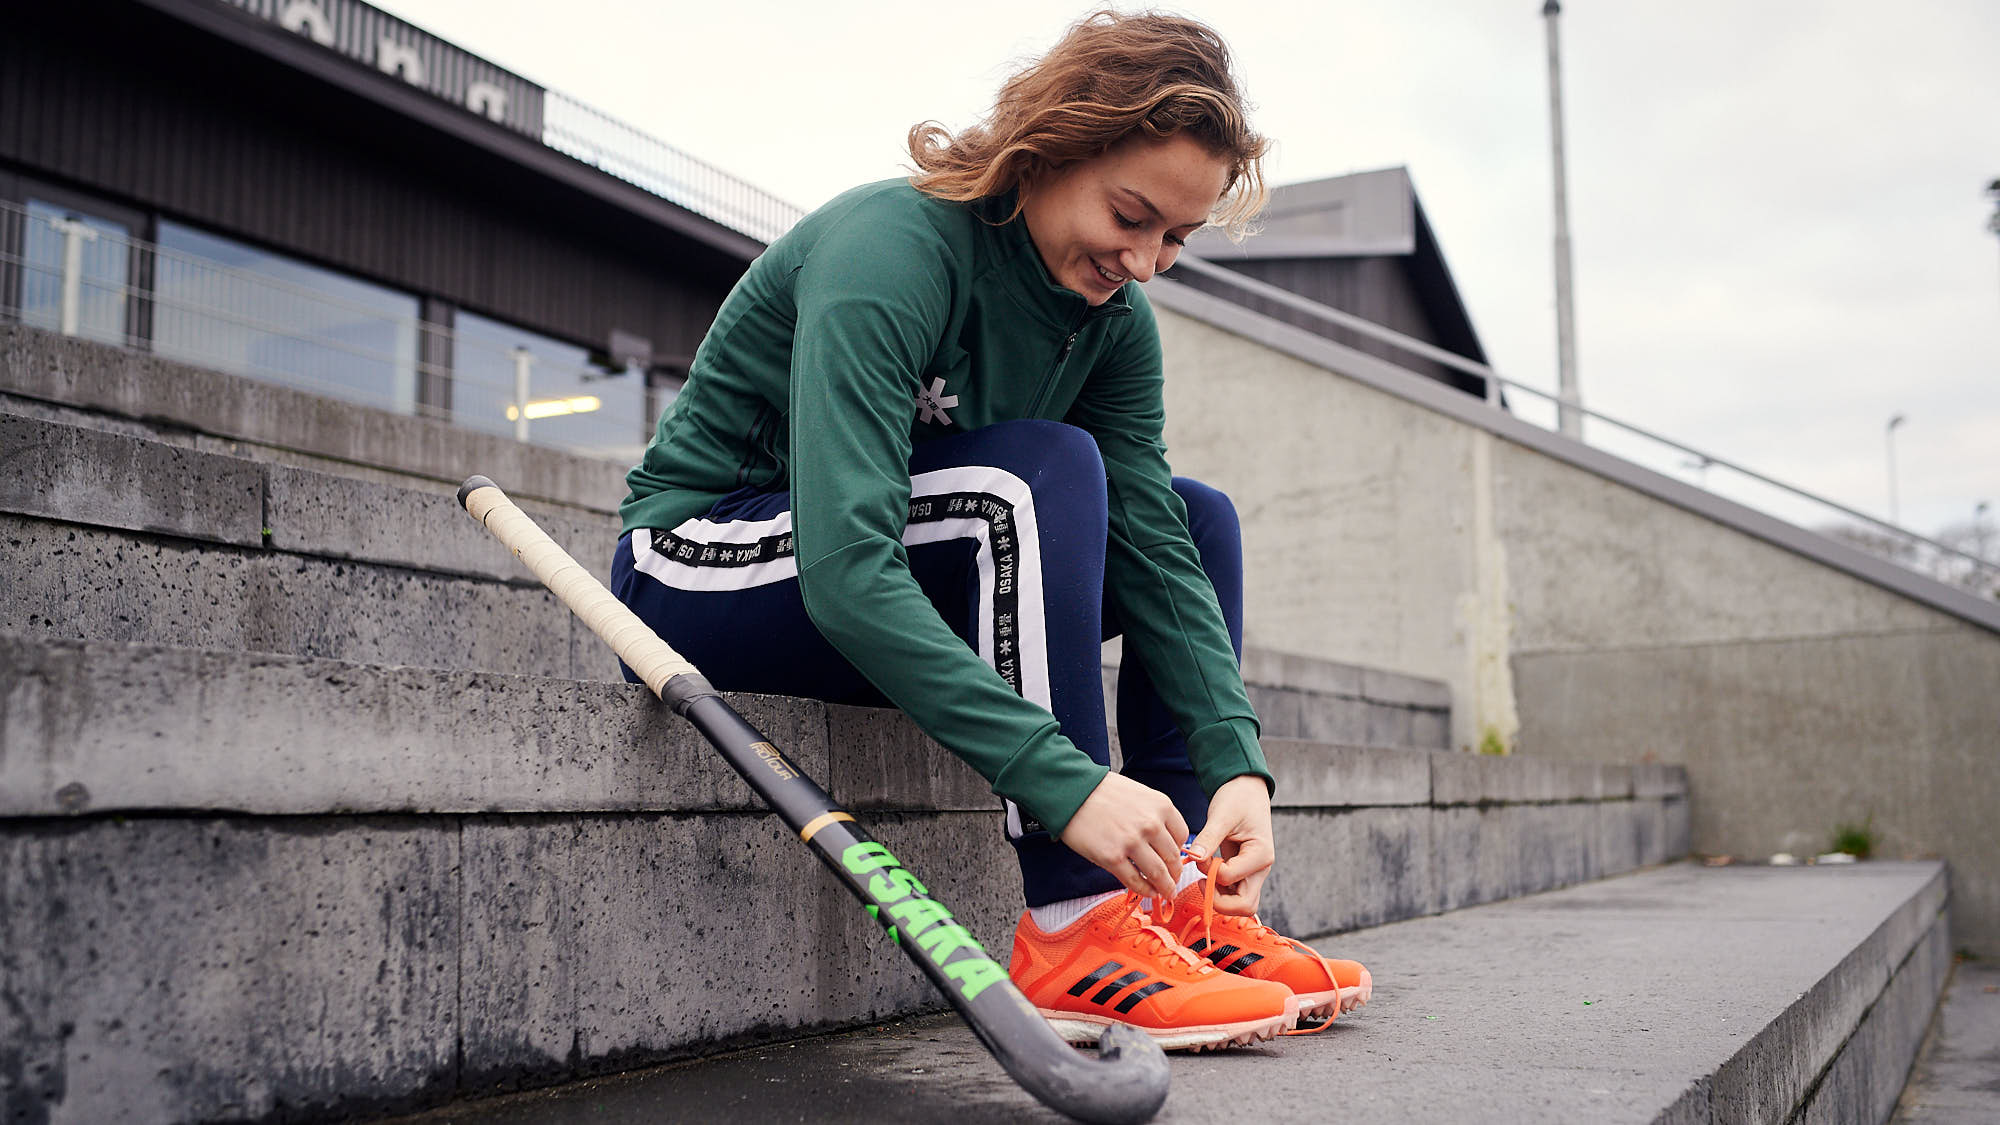 Marijn Veen tying her shoelaces by the side of the hockey pitch